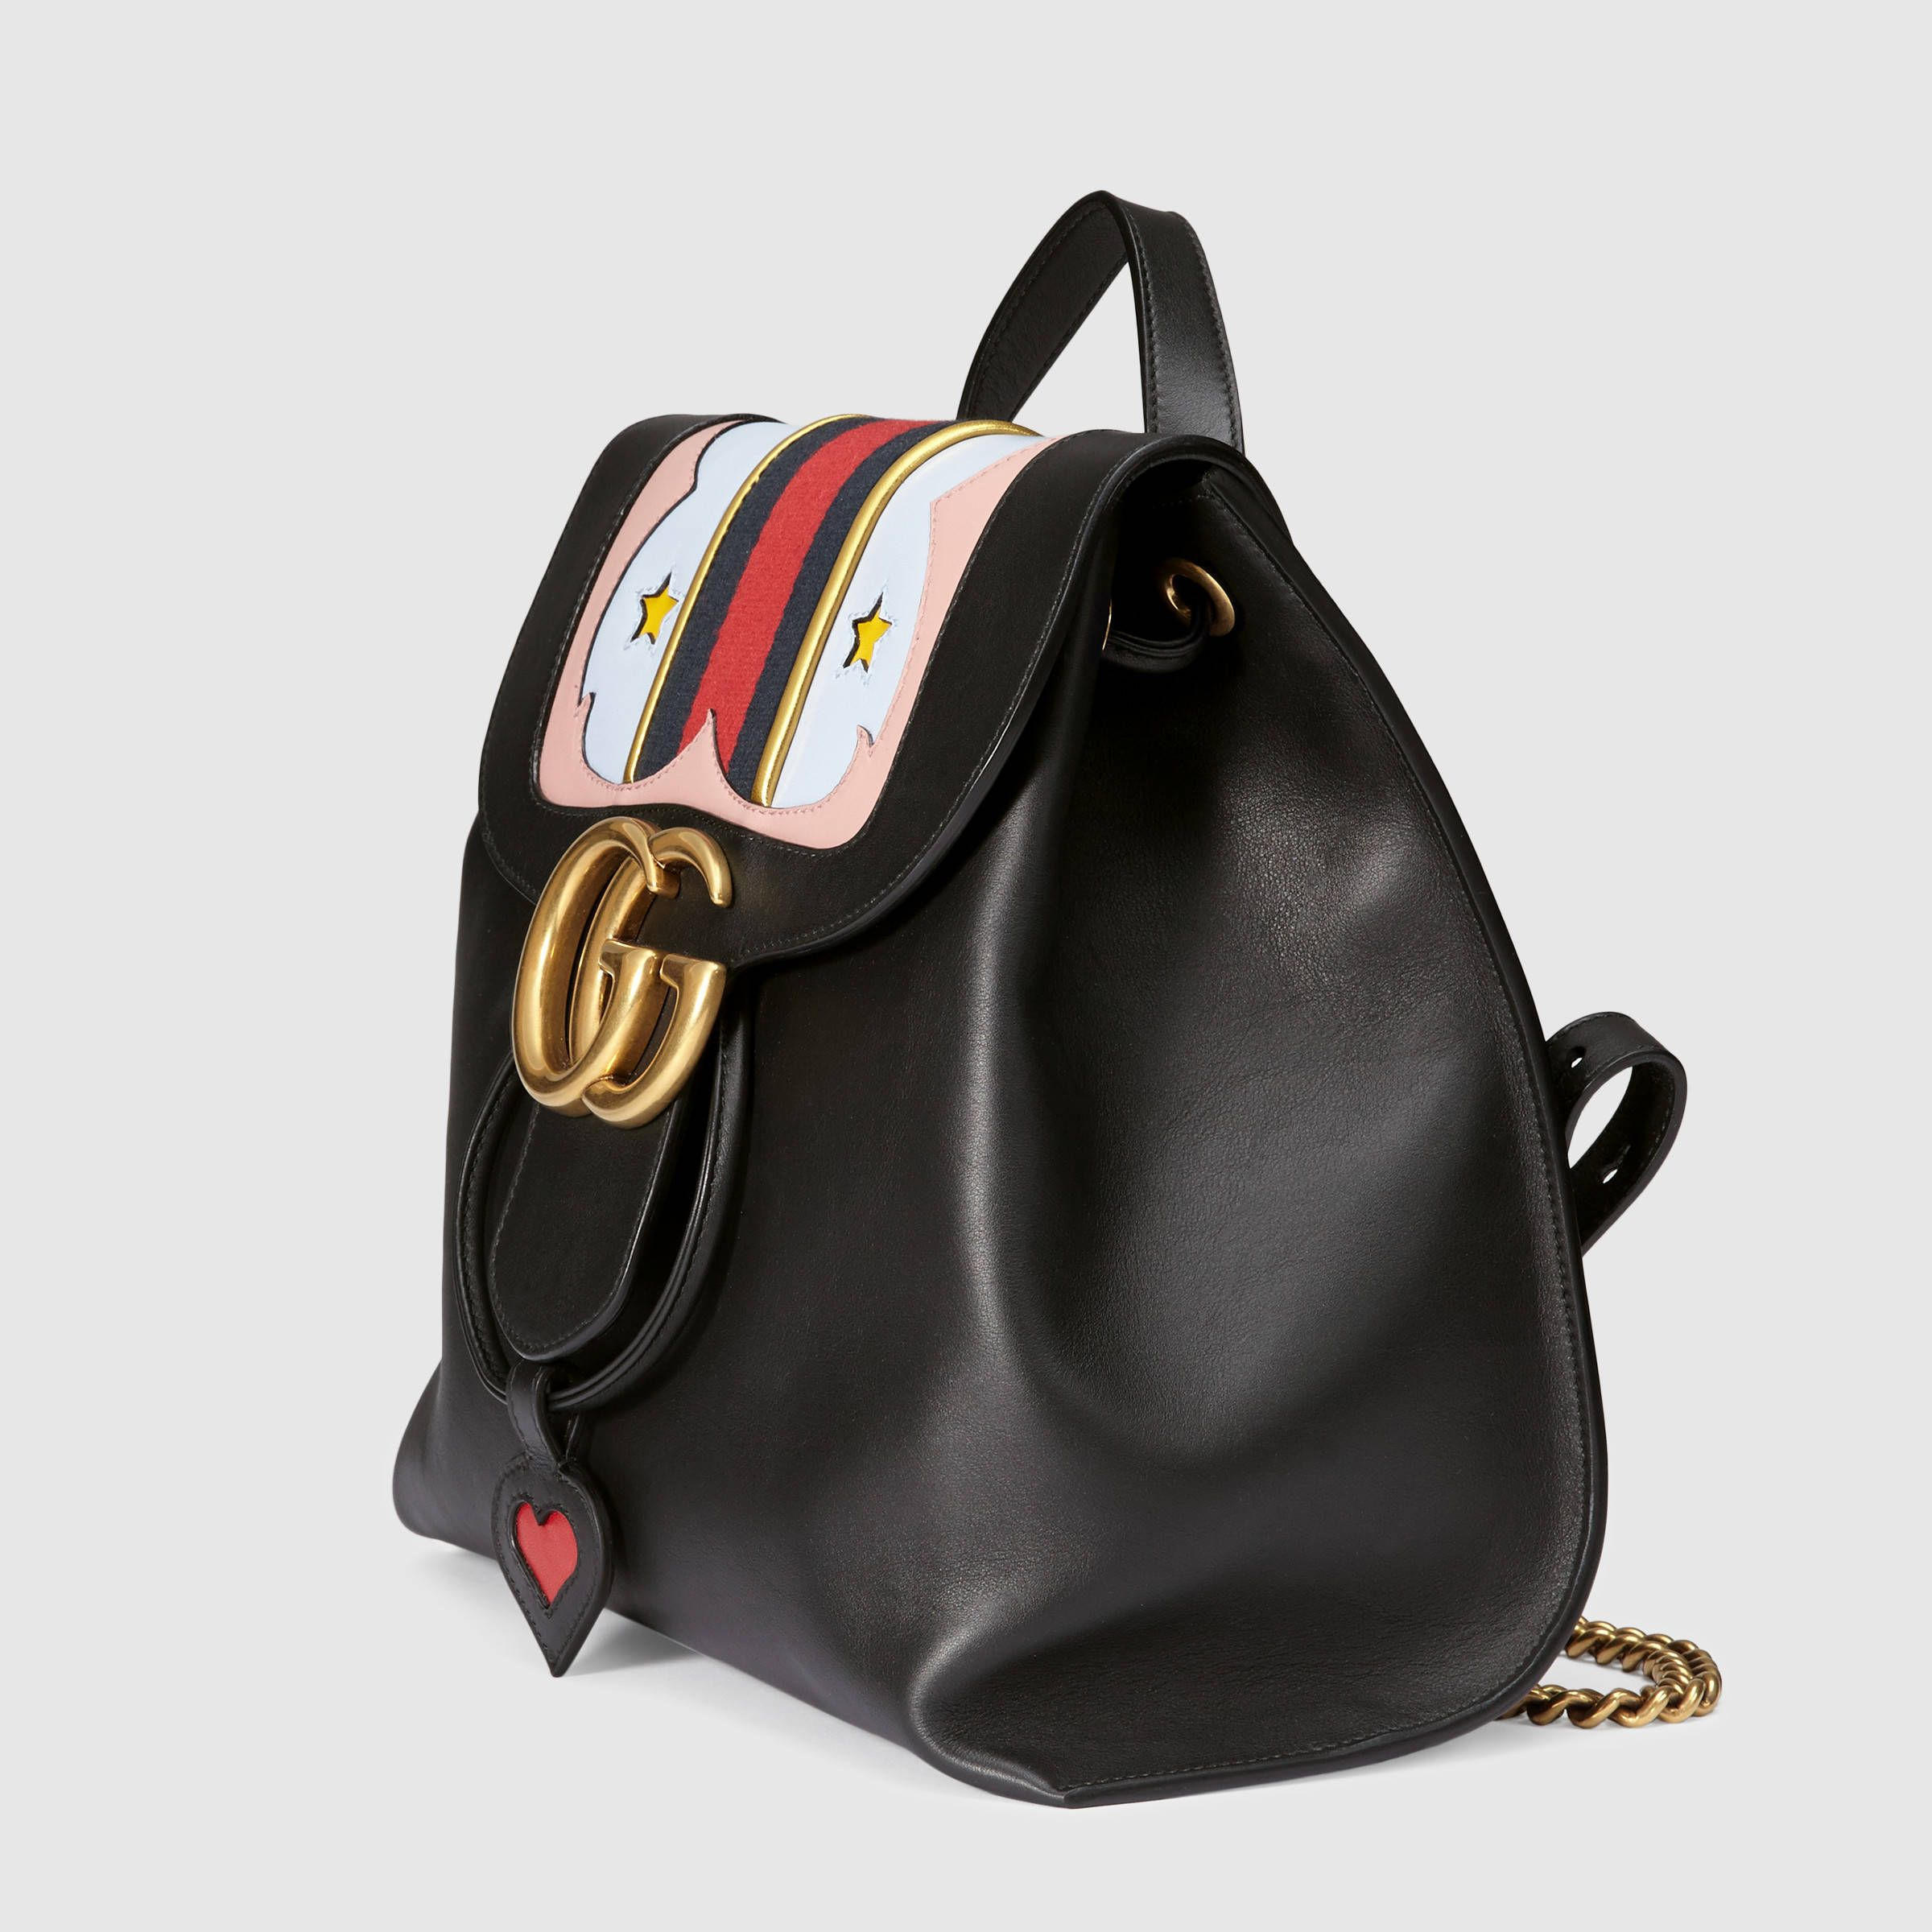 Gucci Backpack 2017